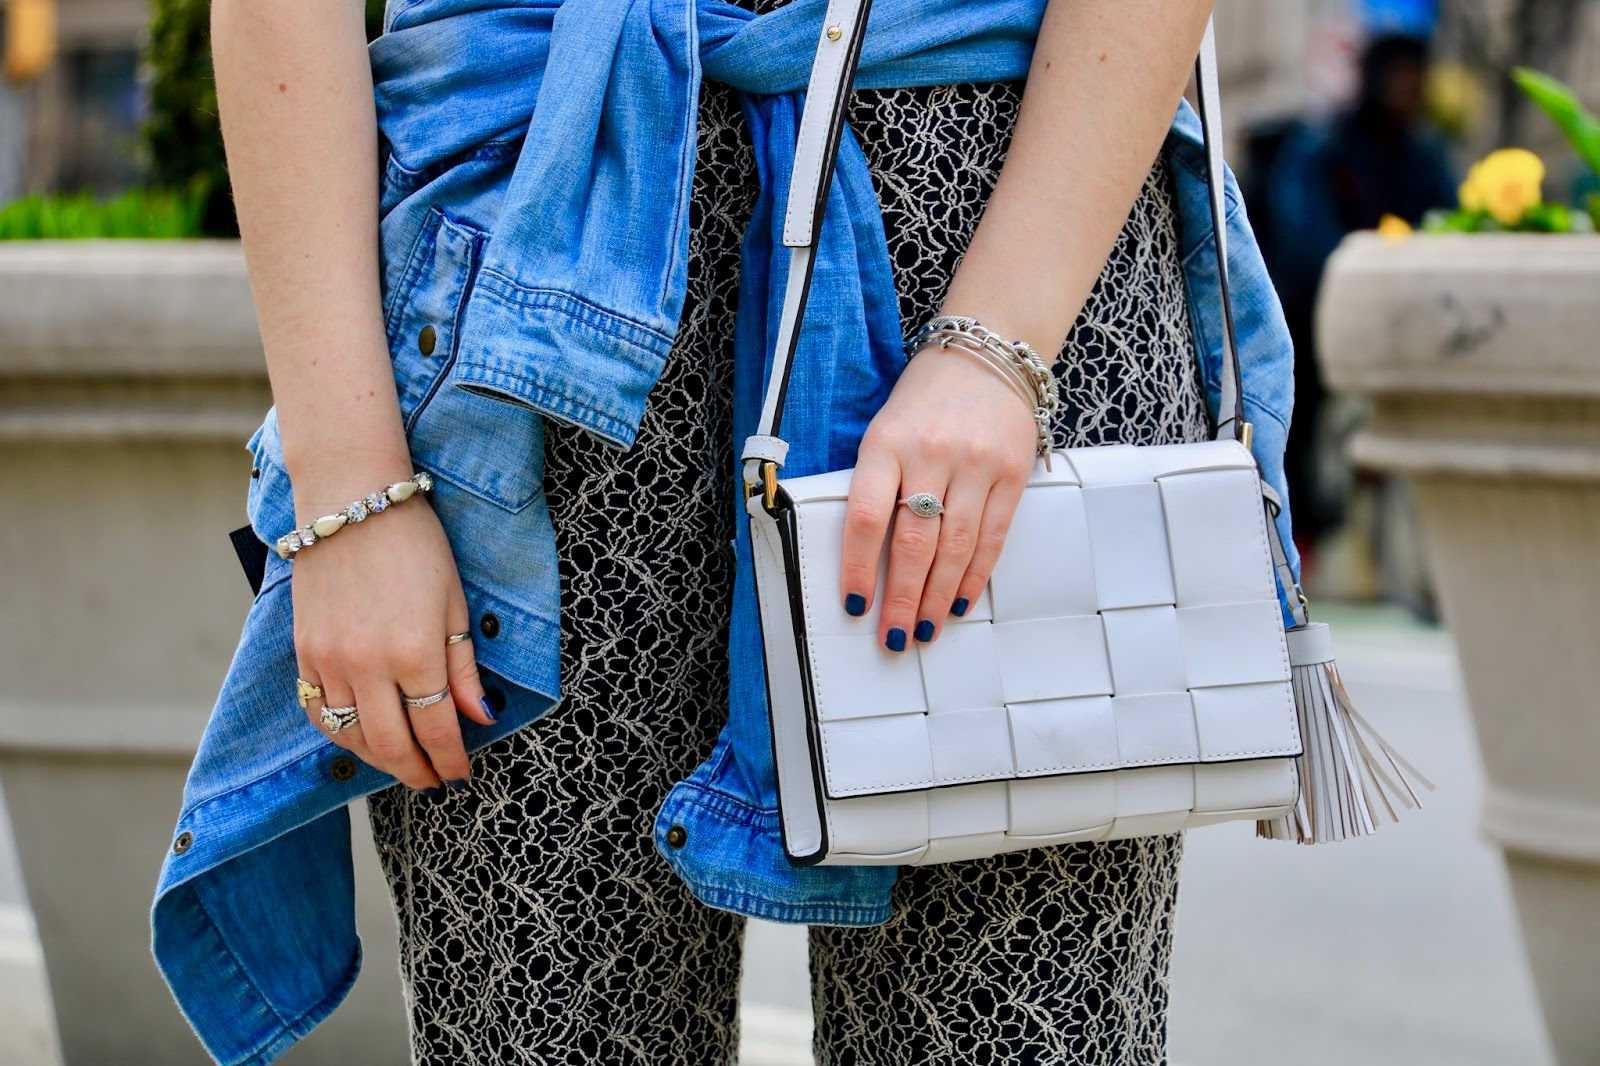 Nyc fashion blogger Kathleen Harper's white Michael Kors purse